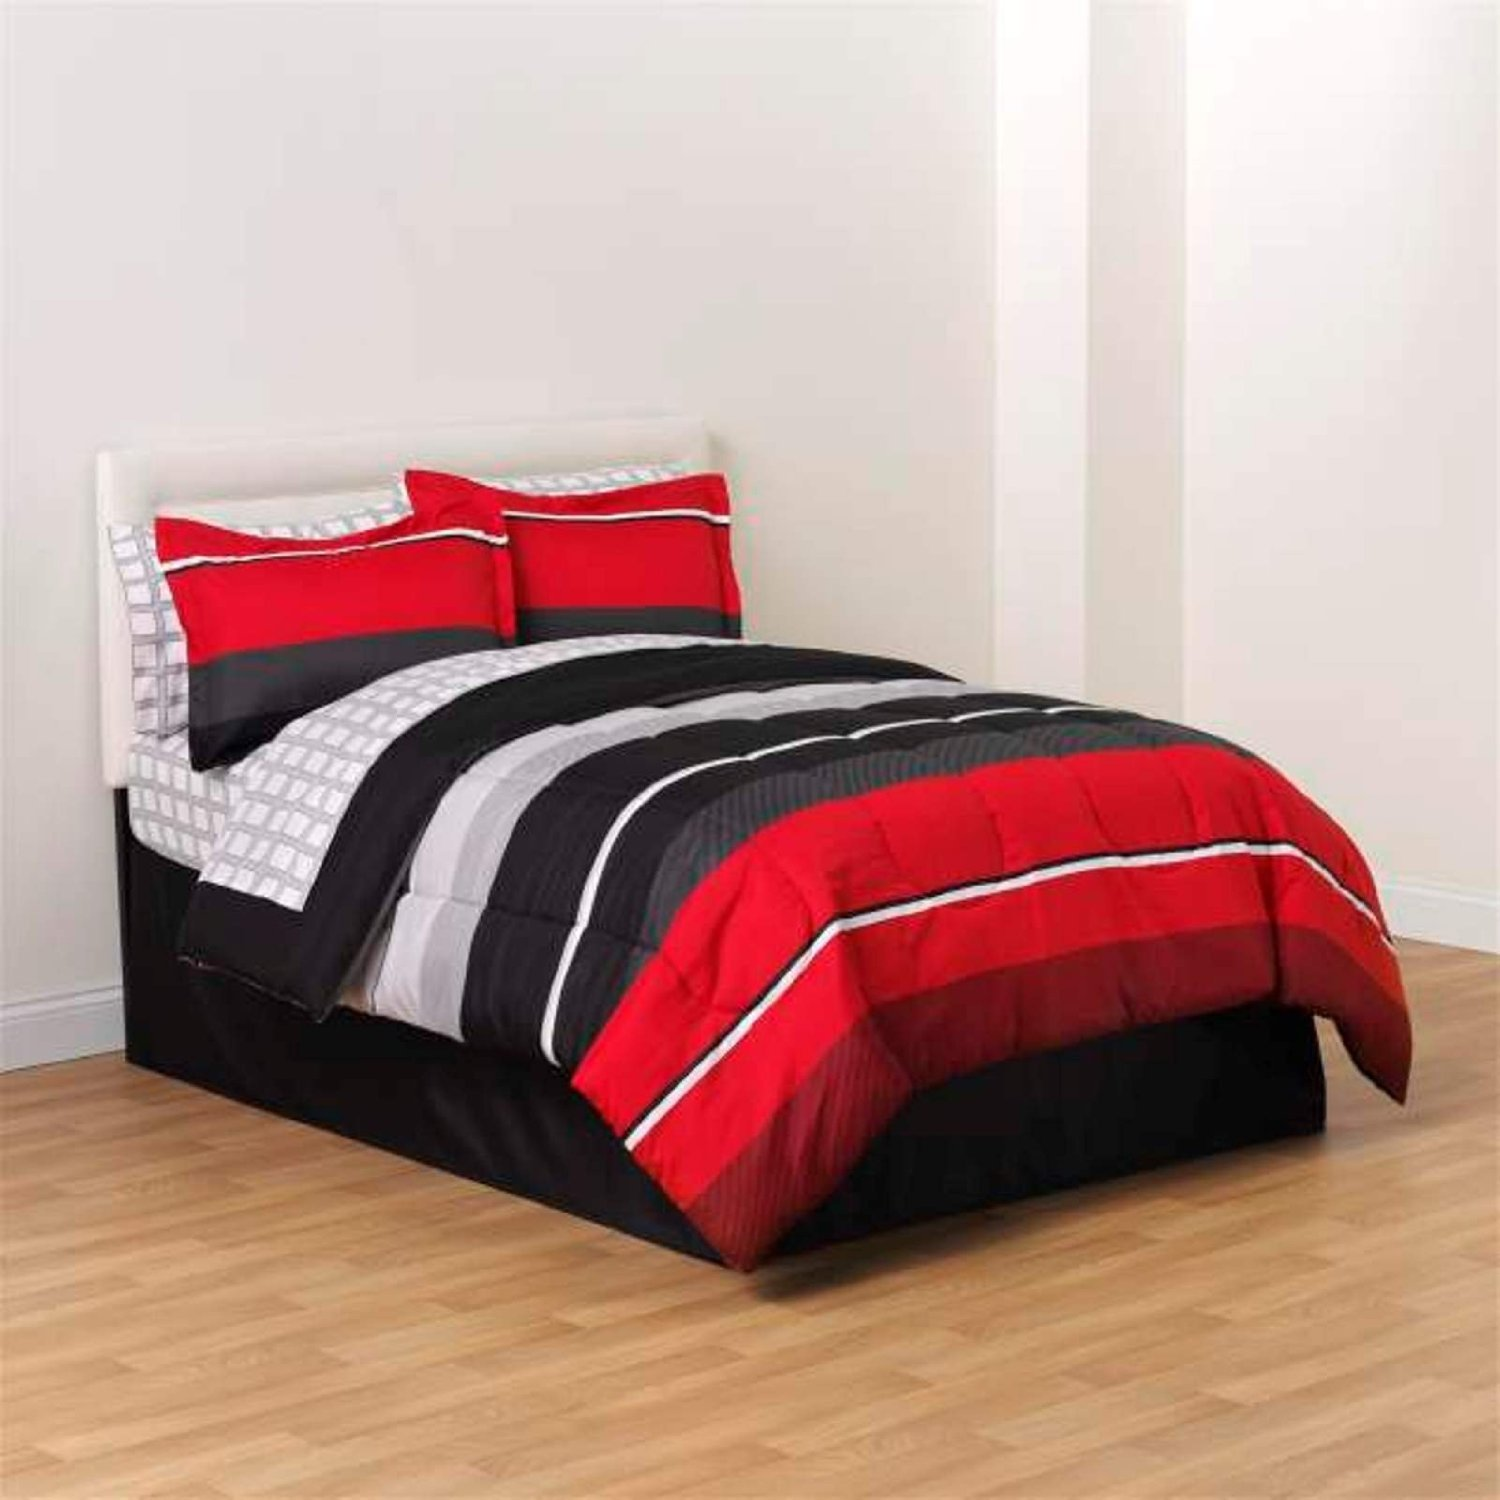 Queen Comforter, Skirt and Sheet Bedding Set